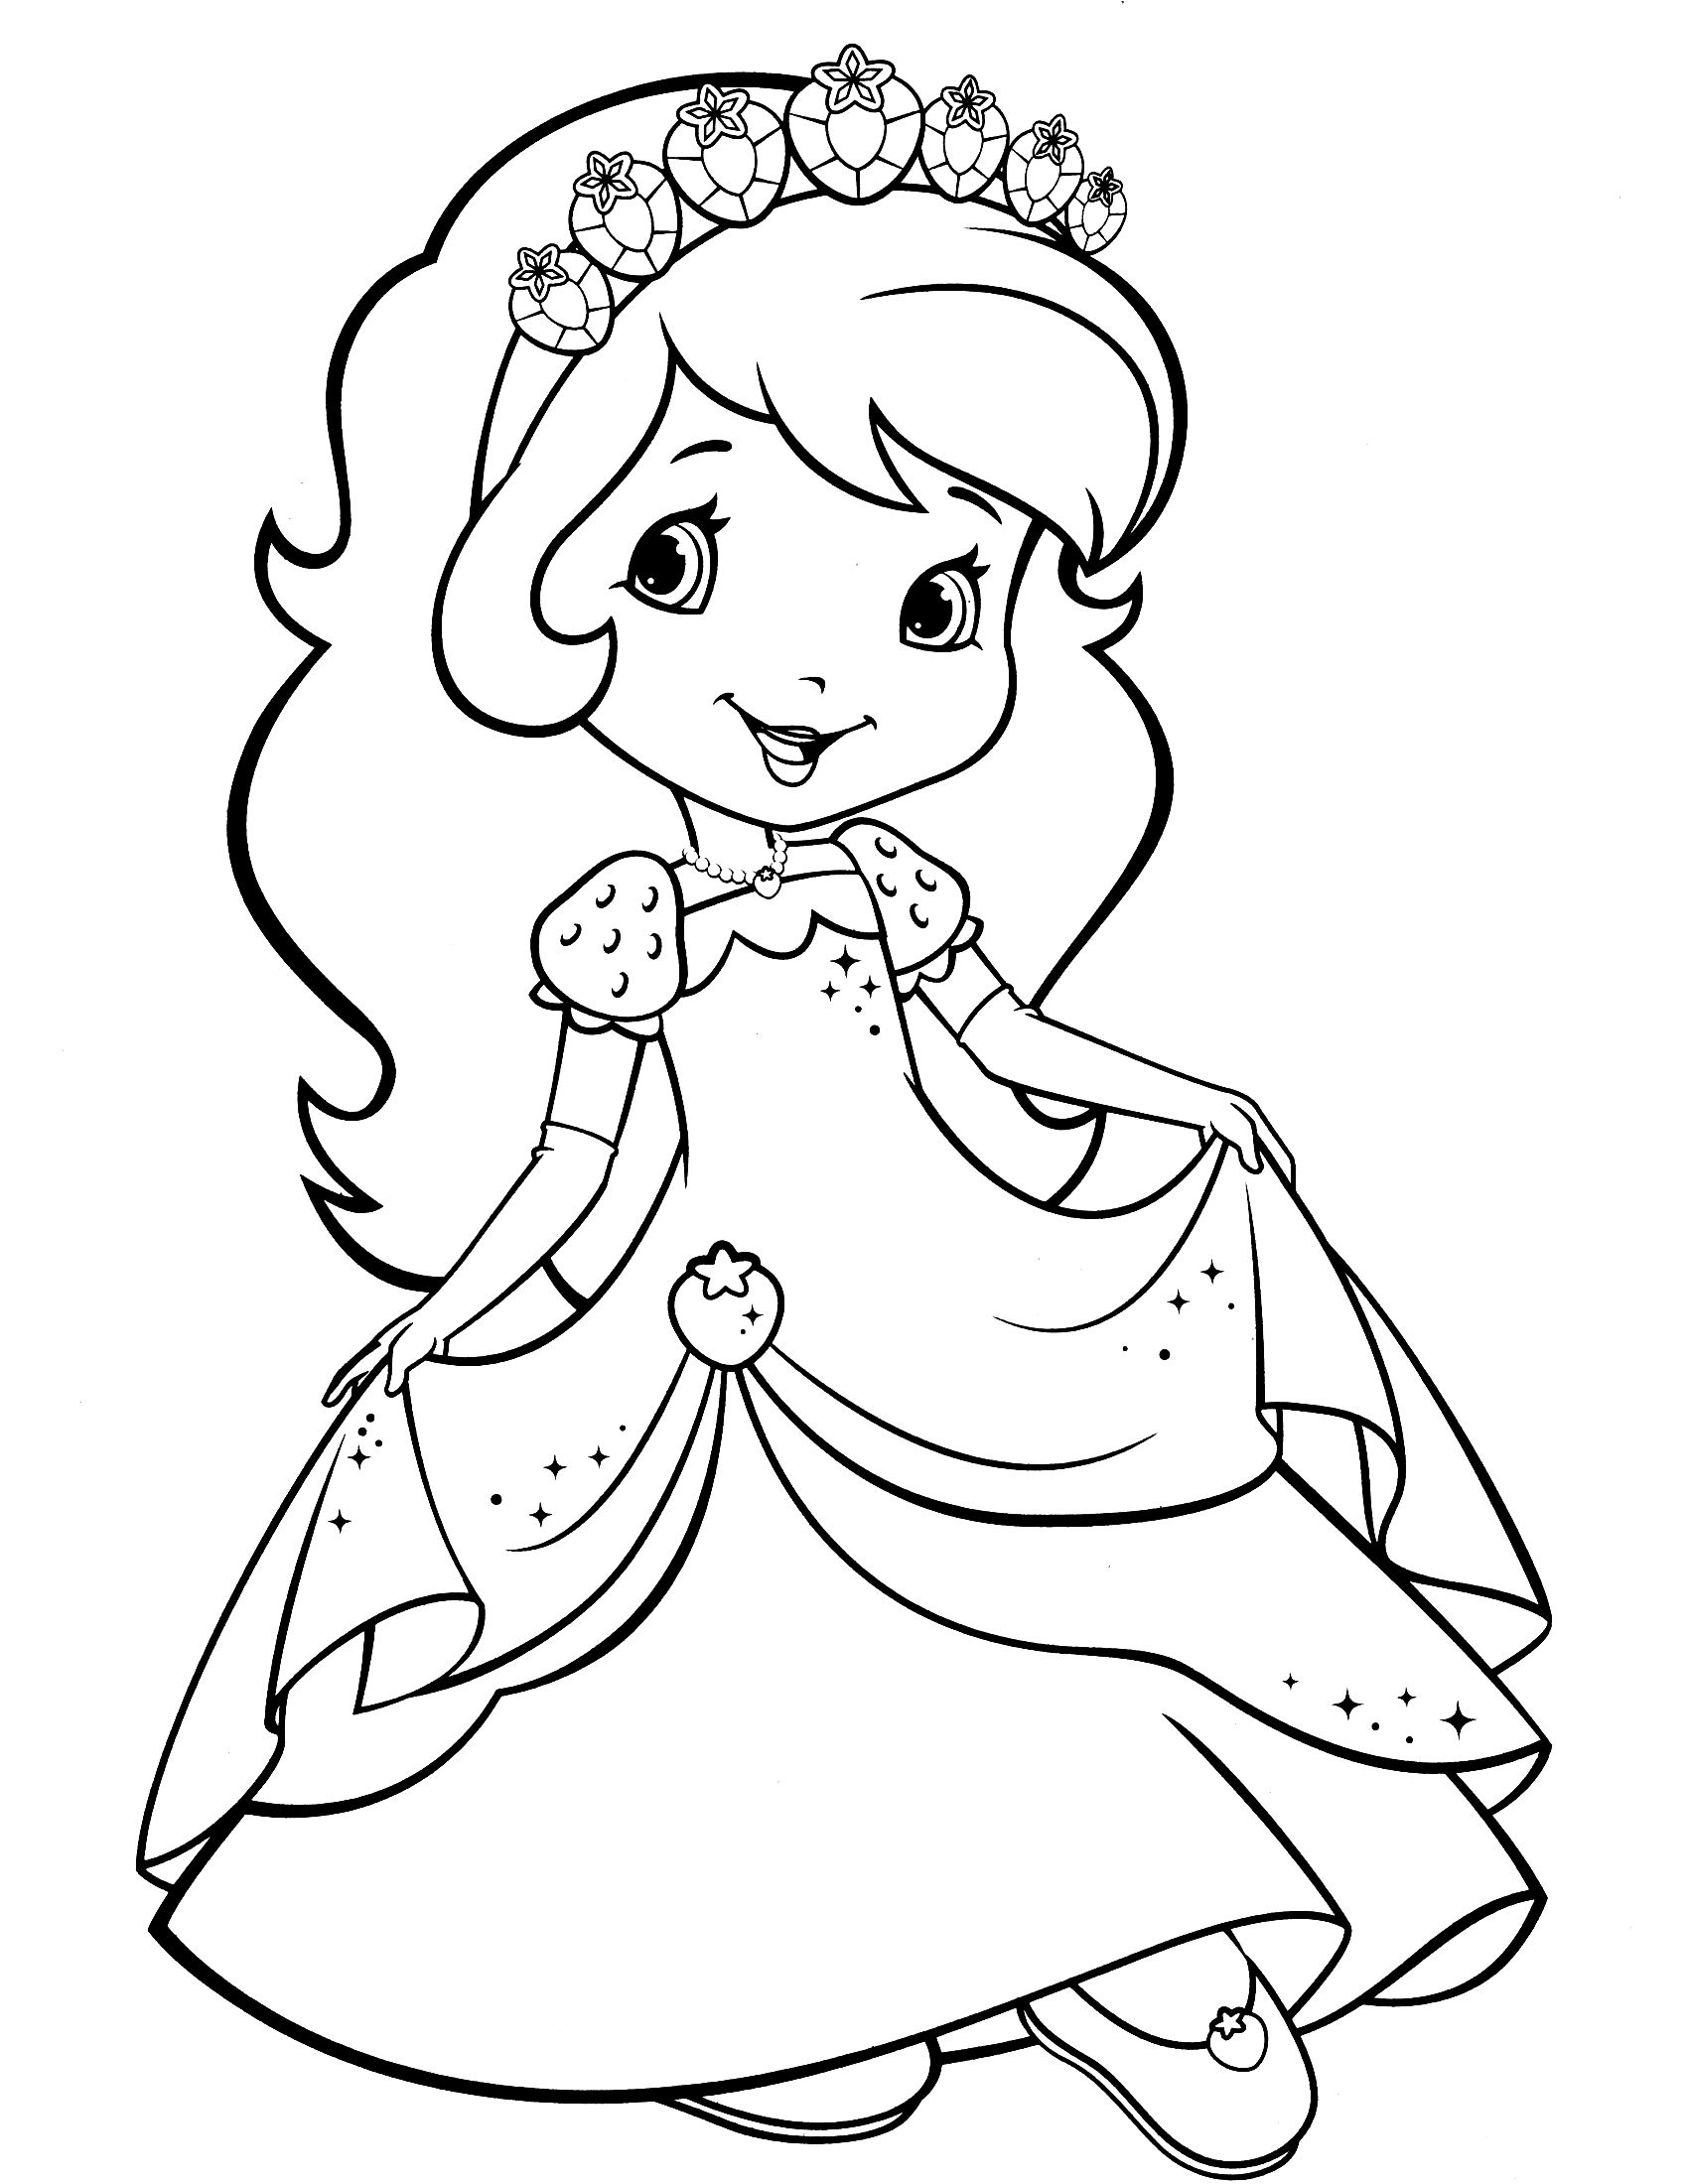 photo regarding Strawberry Shortcake Printable Coloring Pages named strawberry shortcake coloring webpage coloring webpages